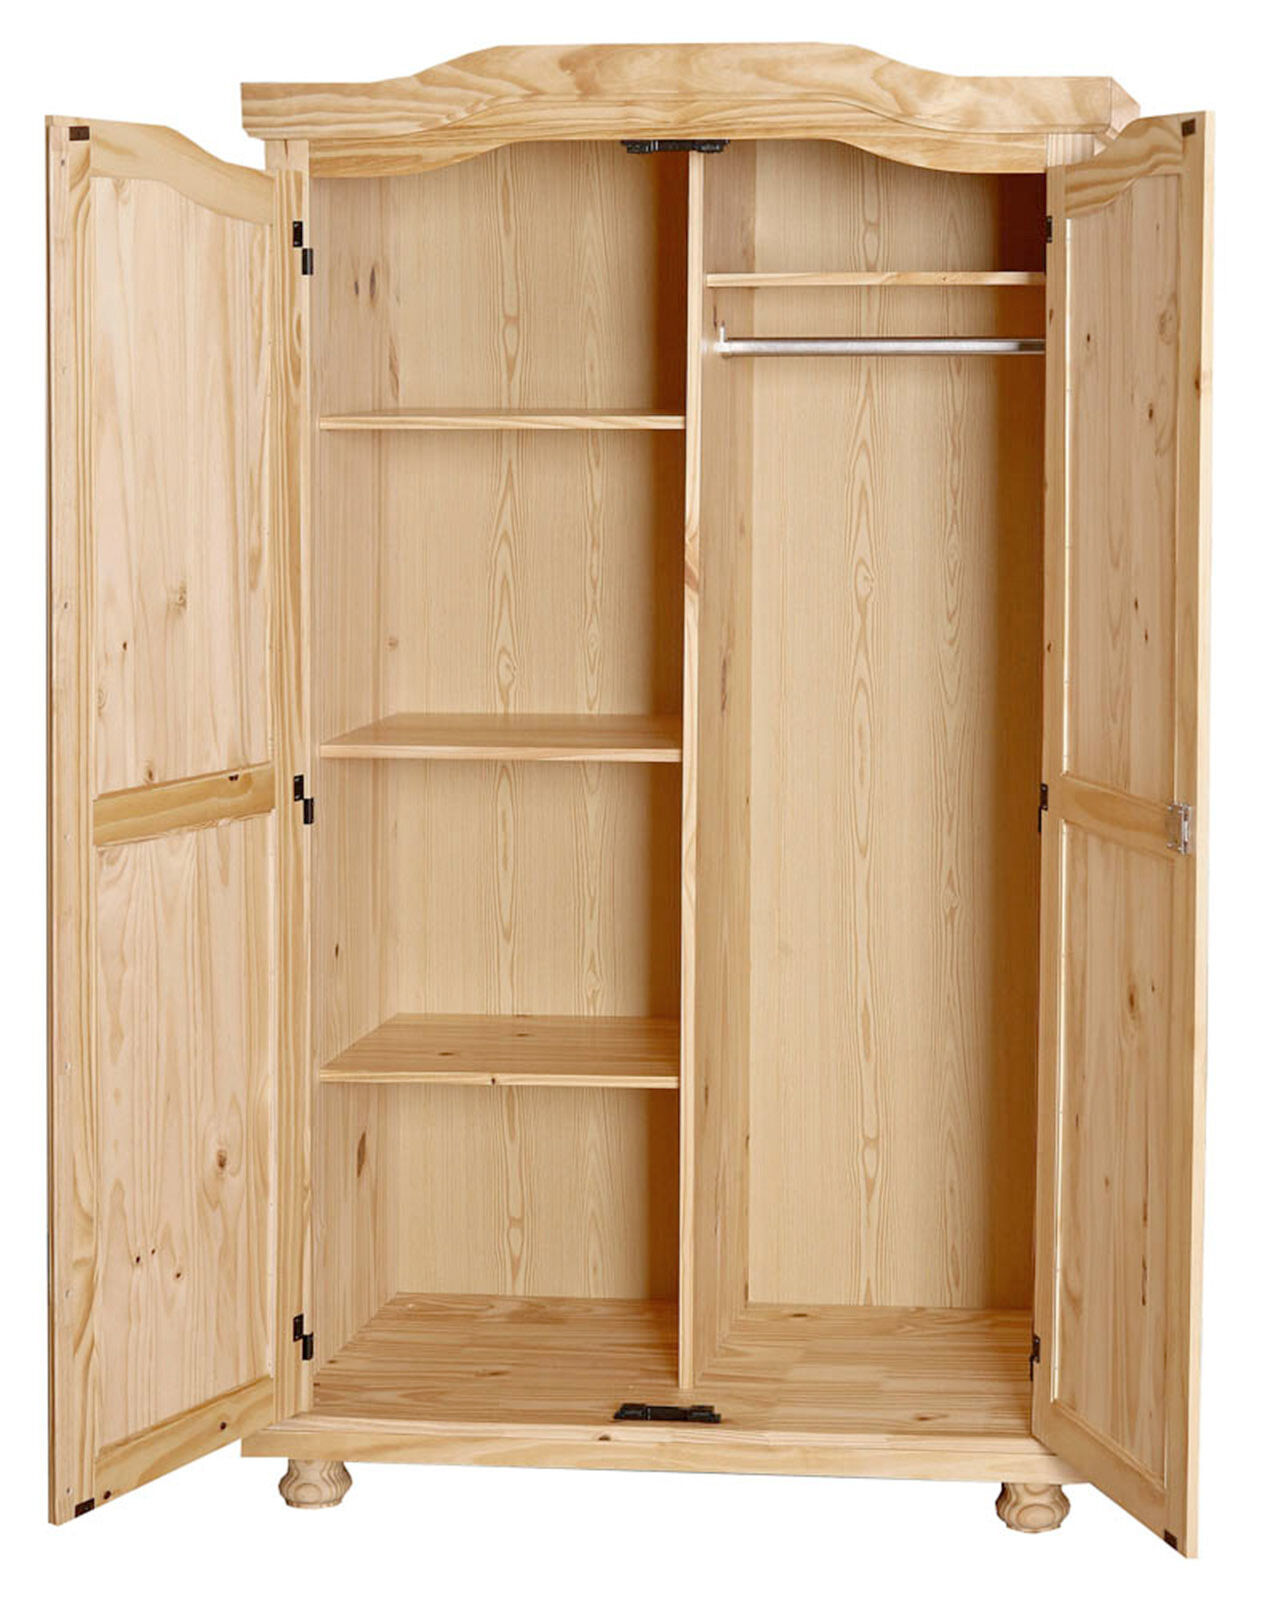 armoire penderie dressing rangement chambre vintage 2 portes pin massif naturel eur 285 78. Black Bedroom Furniture Sets. Home Design Ideas